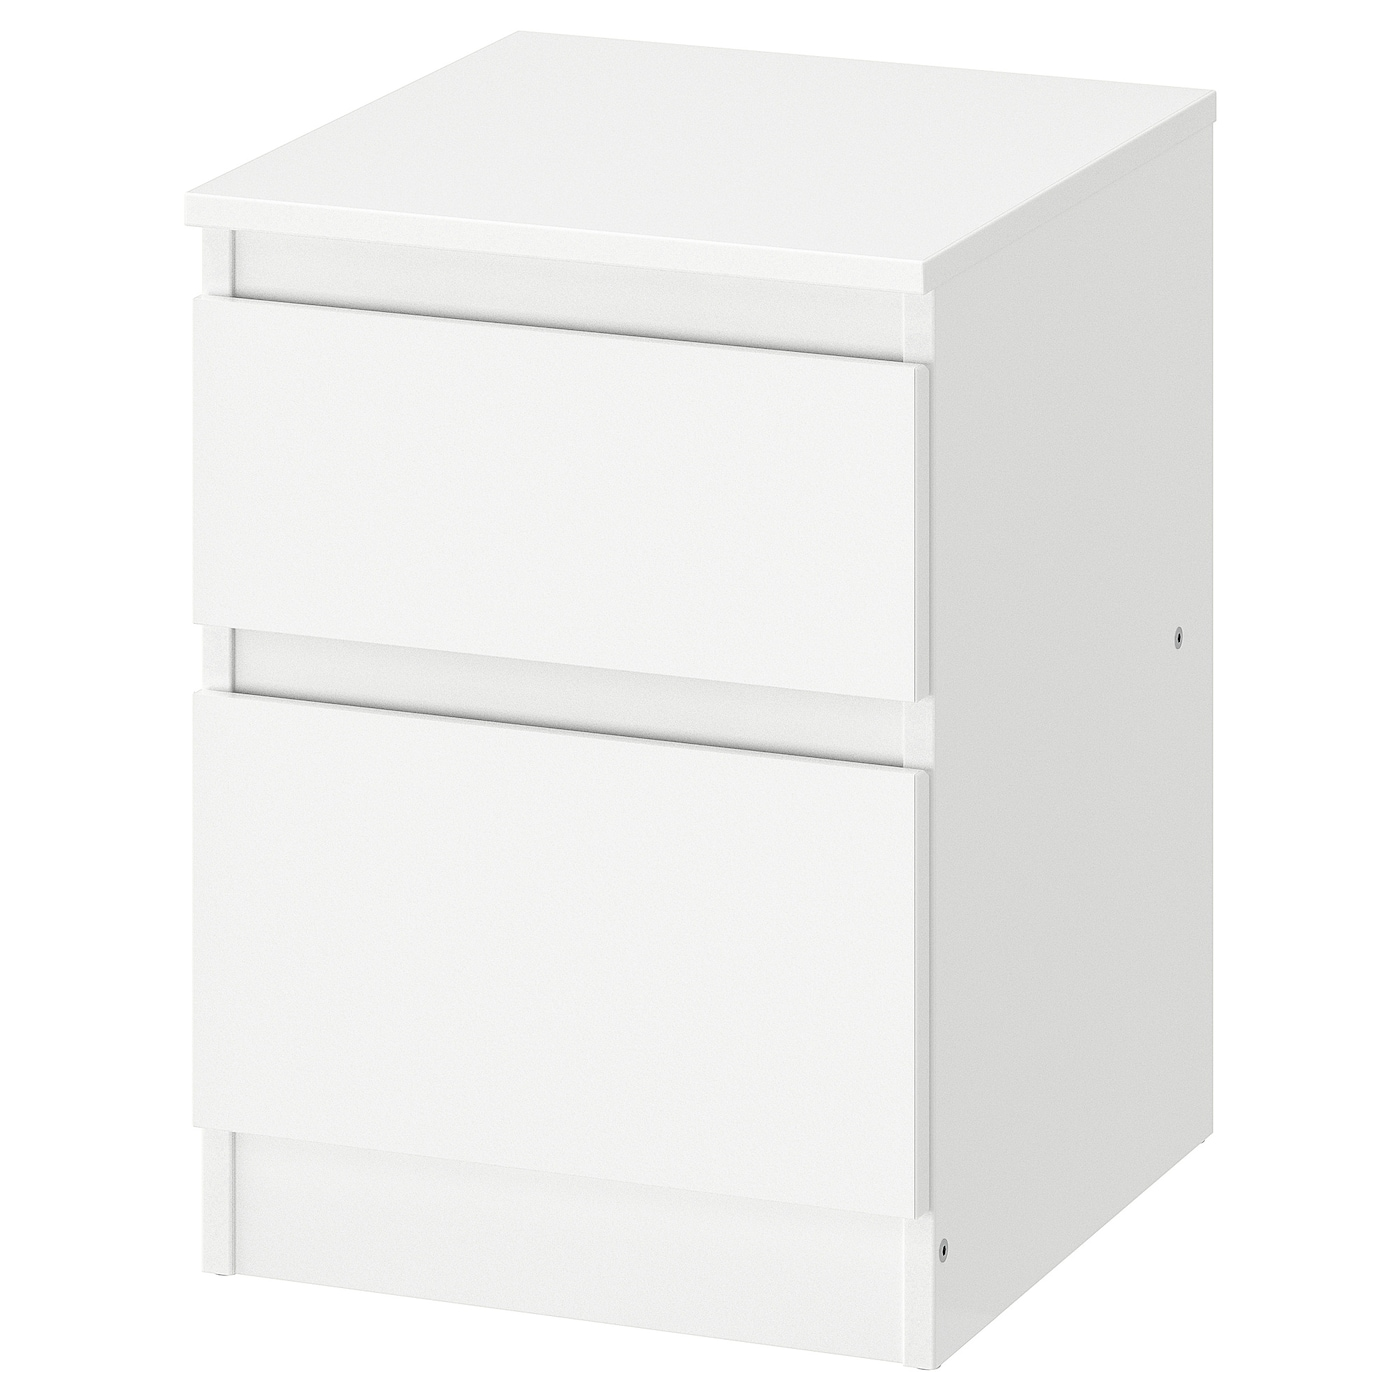 Ikea Kullen Chest Of 2 Drawers Can Also Be Used As A Bedside Table